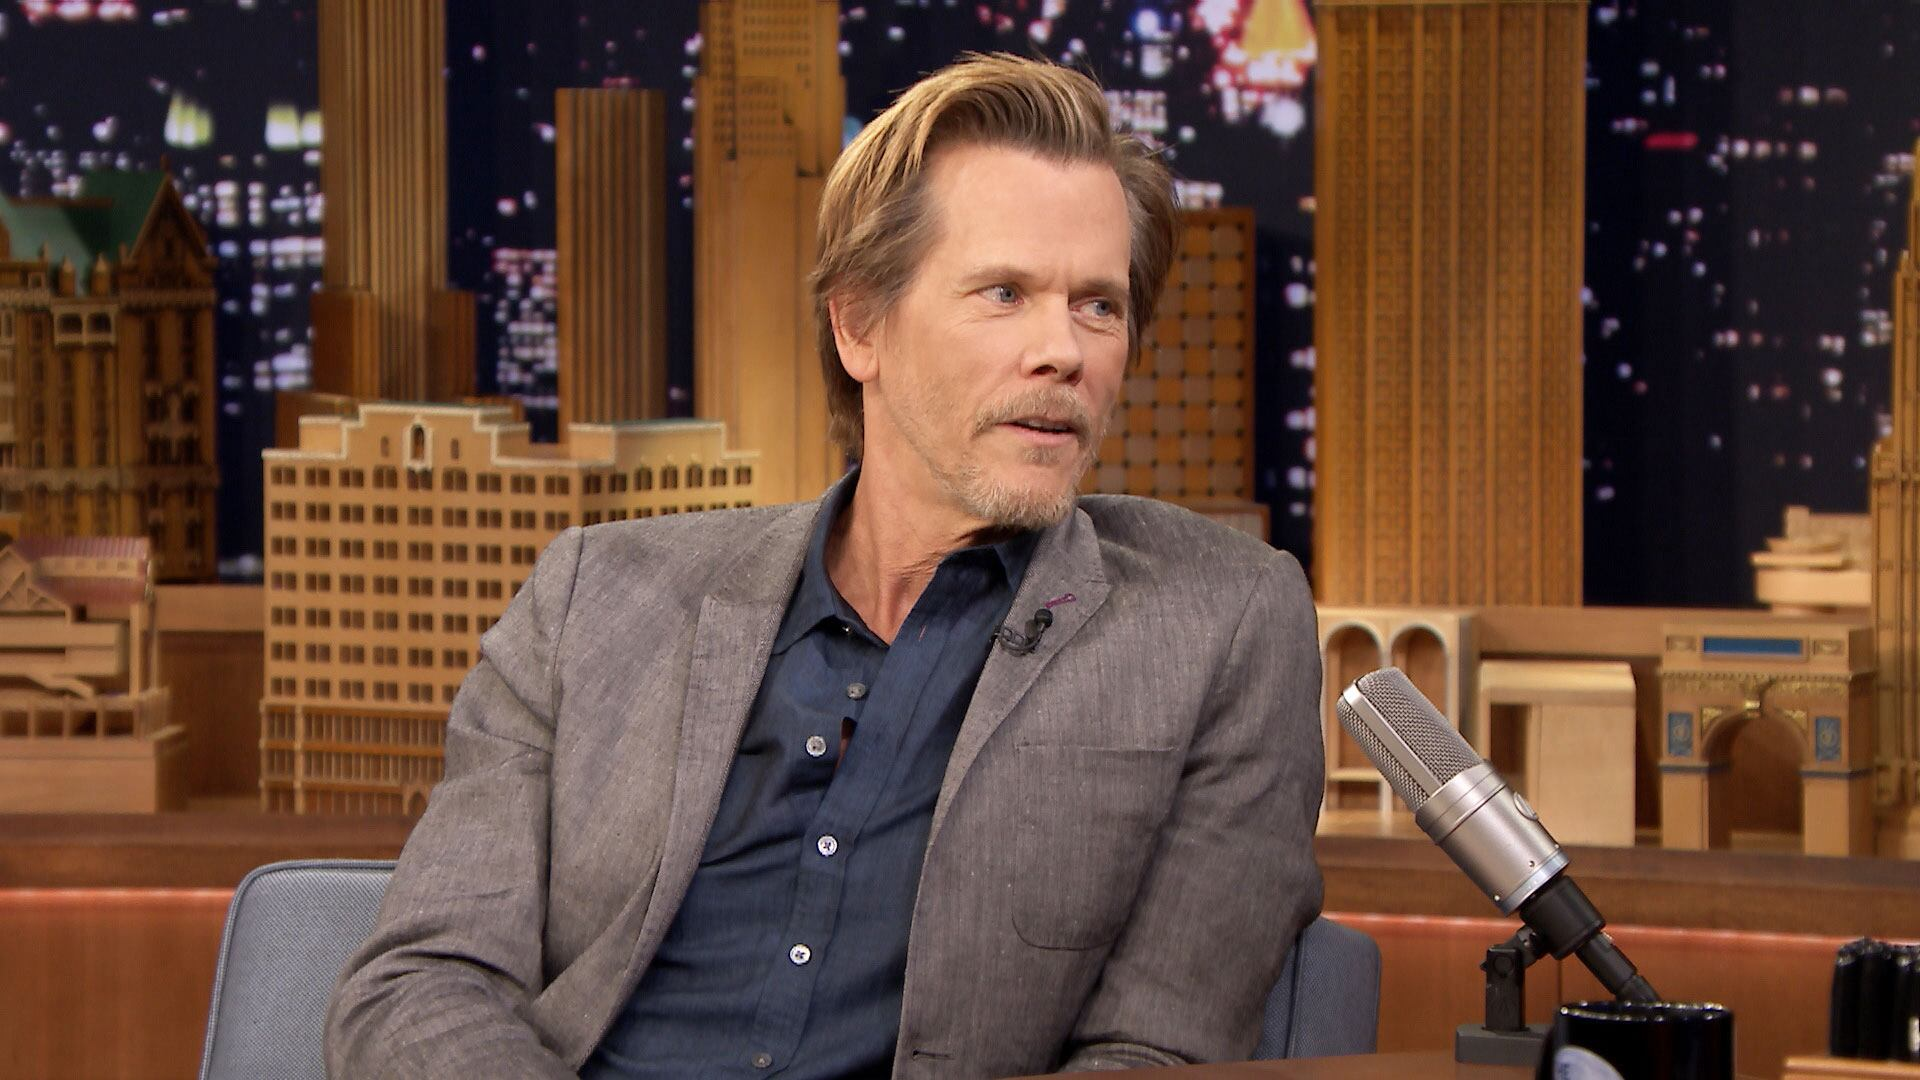 Kevin Bacon's I Love Dick Series' Pilot Is Like an Audition for Amazon